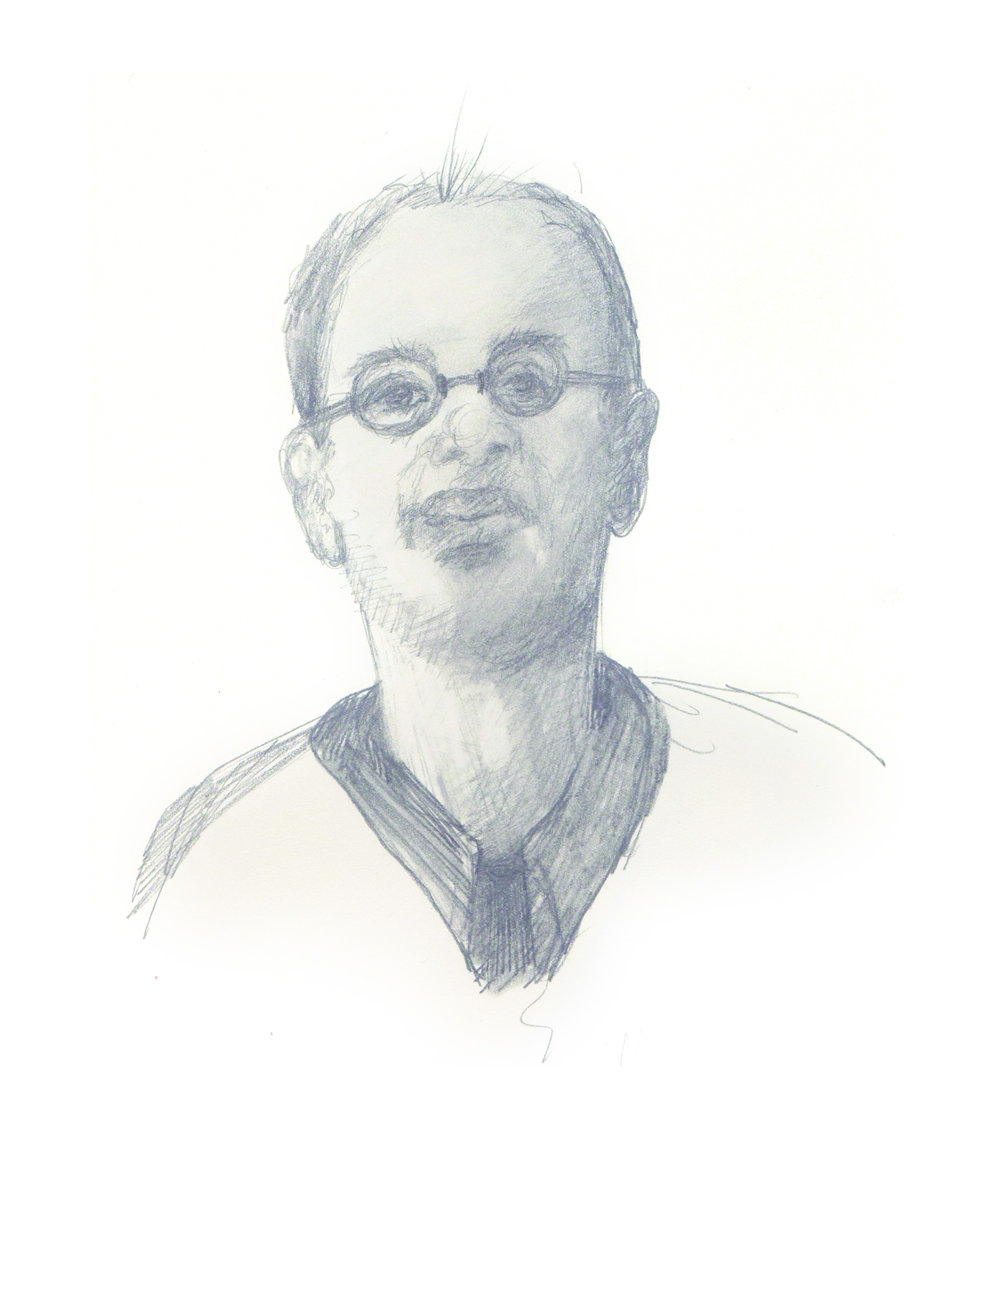 Balding Man With Glasses